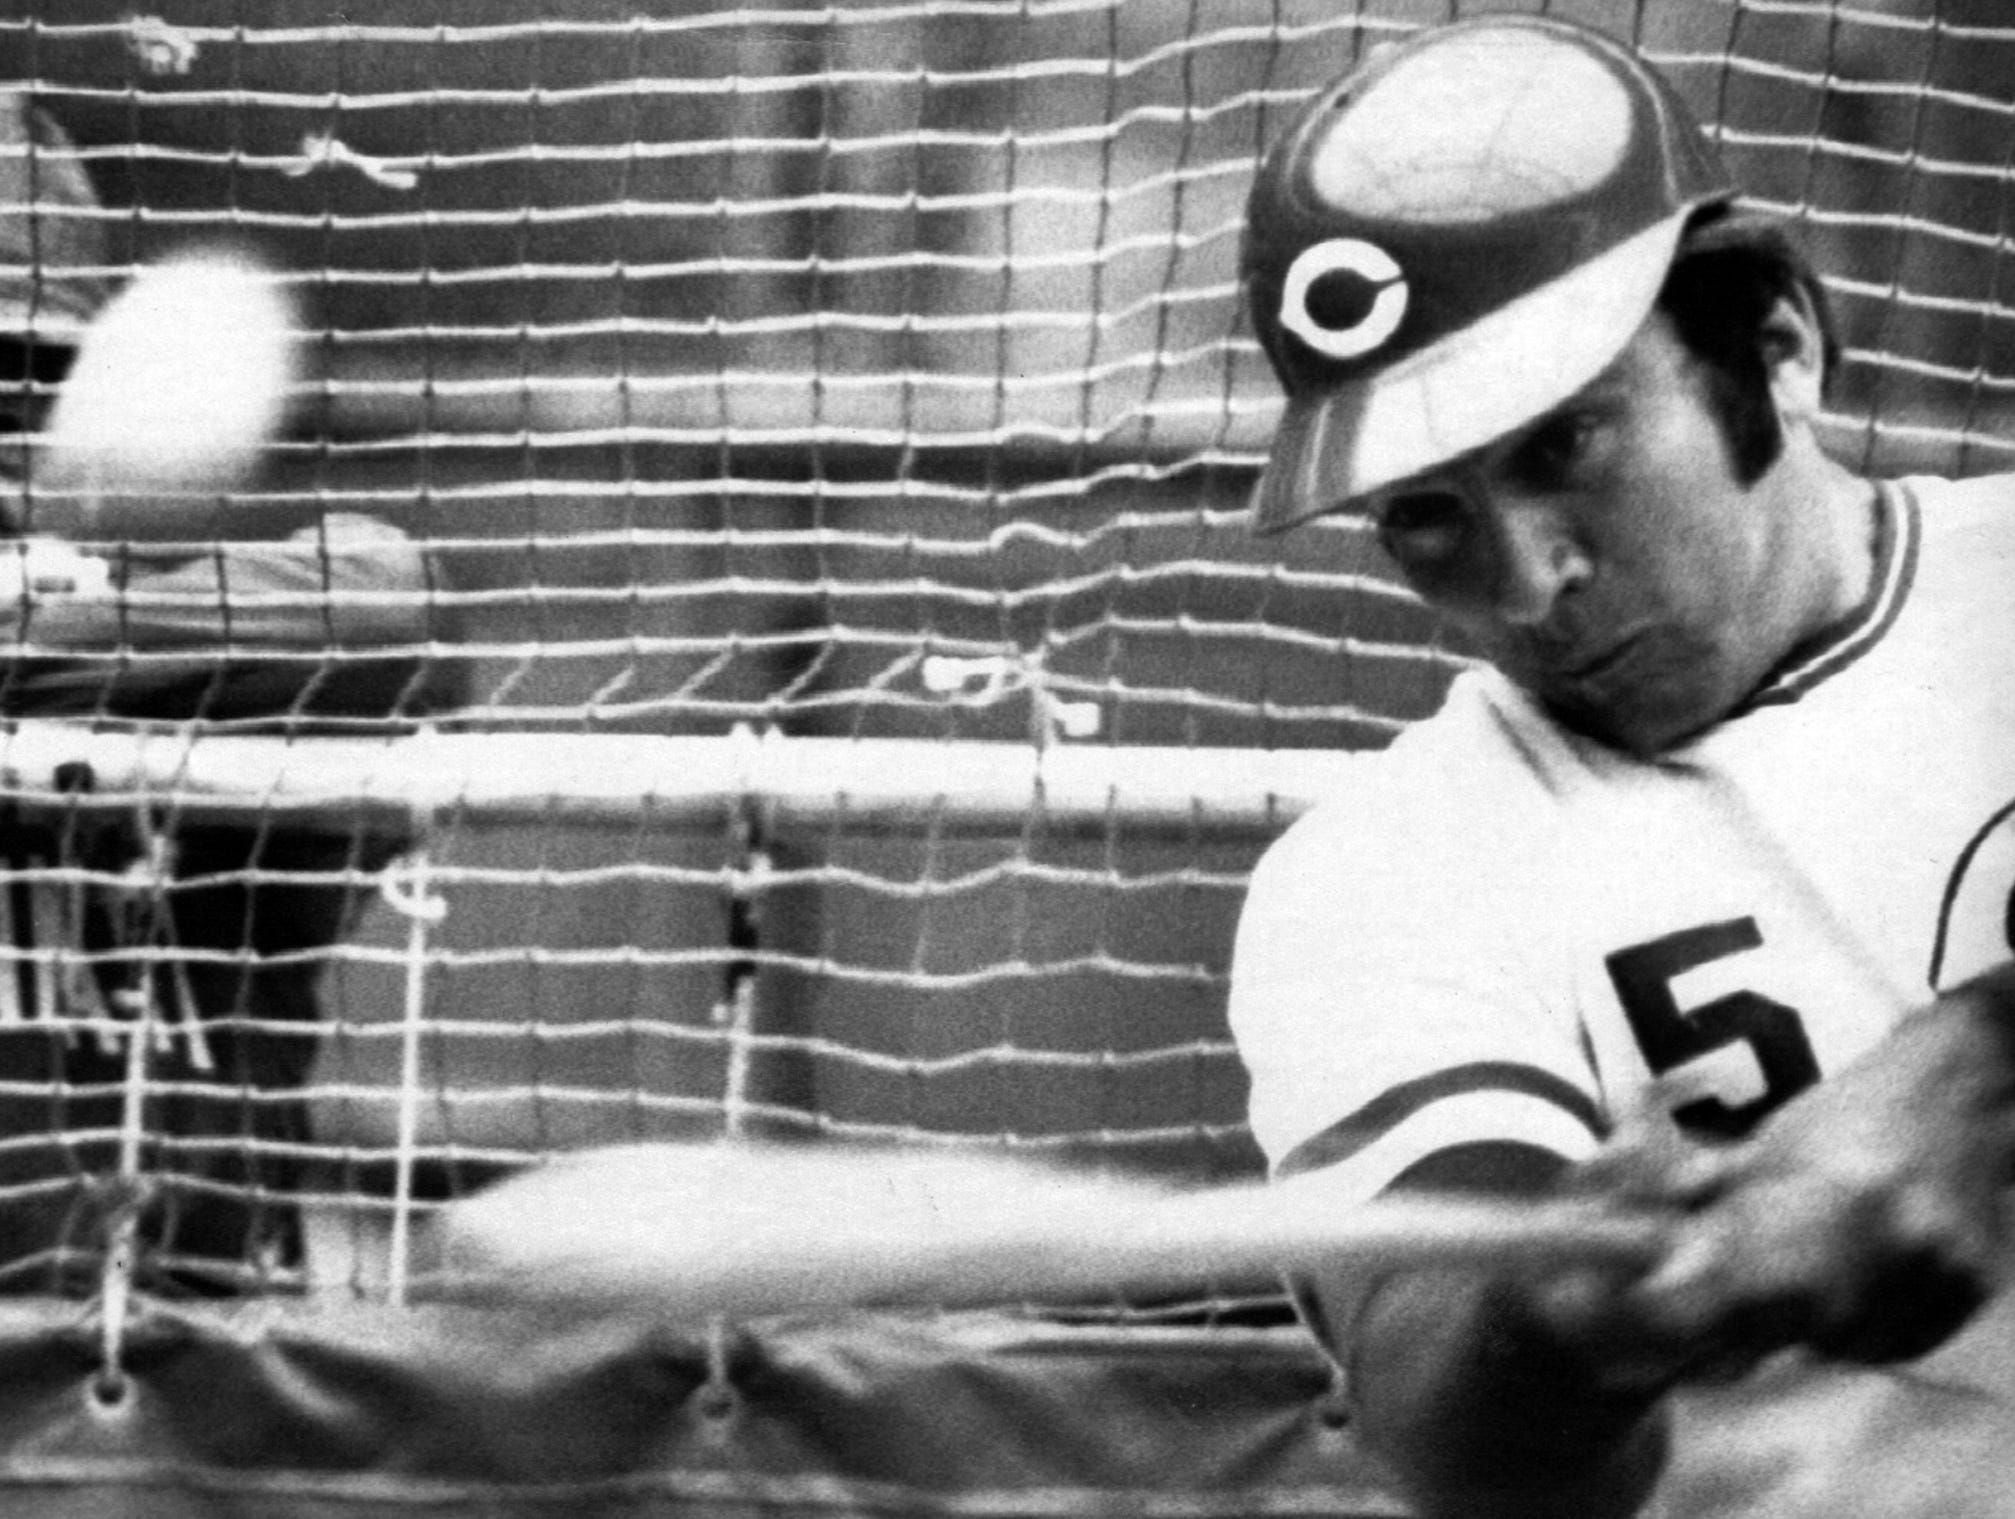 OCTOBER 13, 1972: Johnny Bench, Cincinnati Reds slugger, takes cut at ball in batting cage in warmup for first game of World Series against Oakland Athletics here in Cincinnati Saturday. AP Photo scanned August 26, 2013 FROM A SUNDAY JULY 23, 1989 CAPTION: Bench tied the National League record for most homers in a span of five consecutive games when he hit his seventh on June 3. Bench tied the record Jim Bottomley had held since 1929.